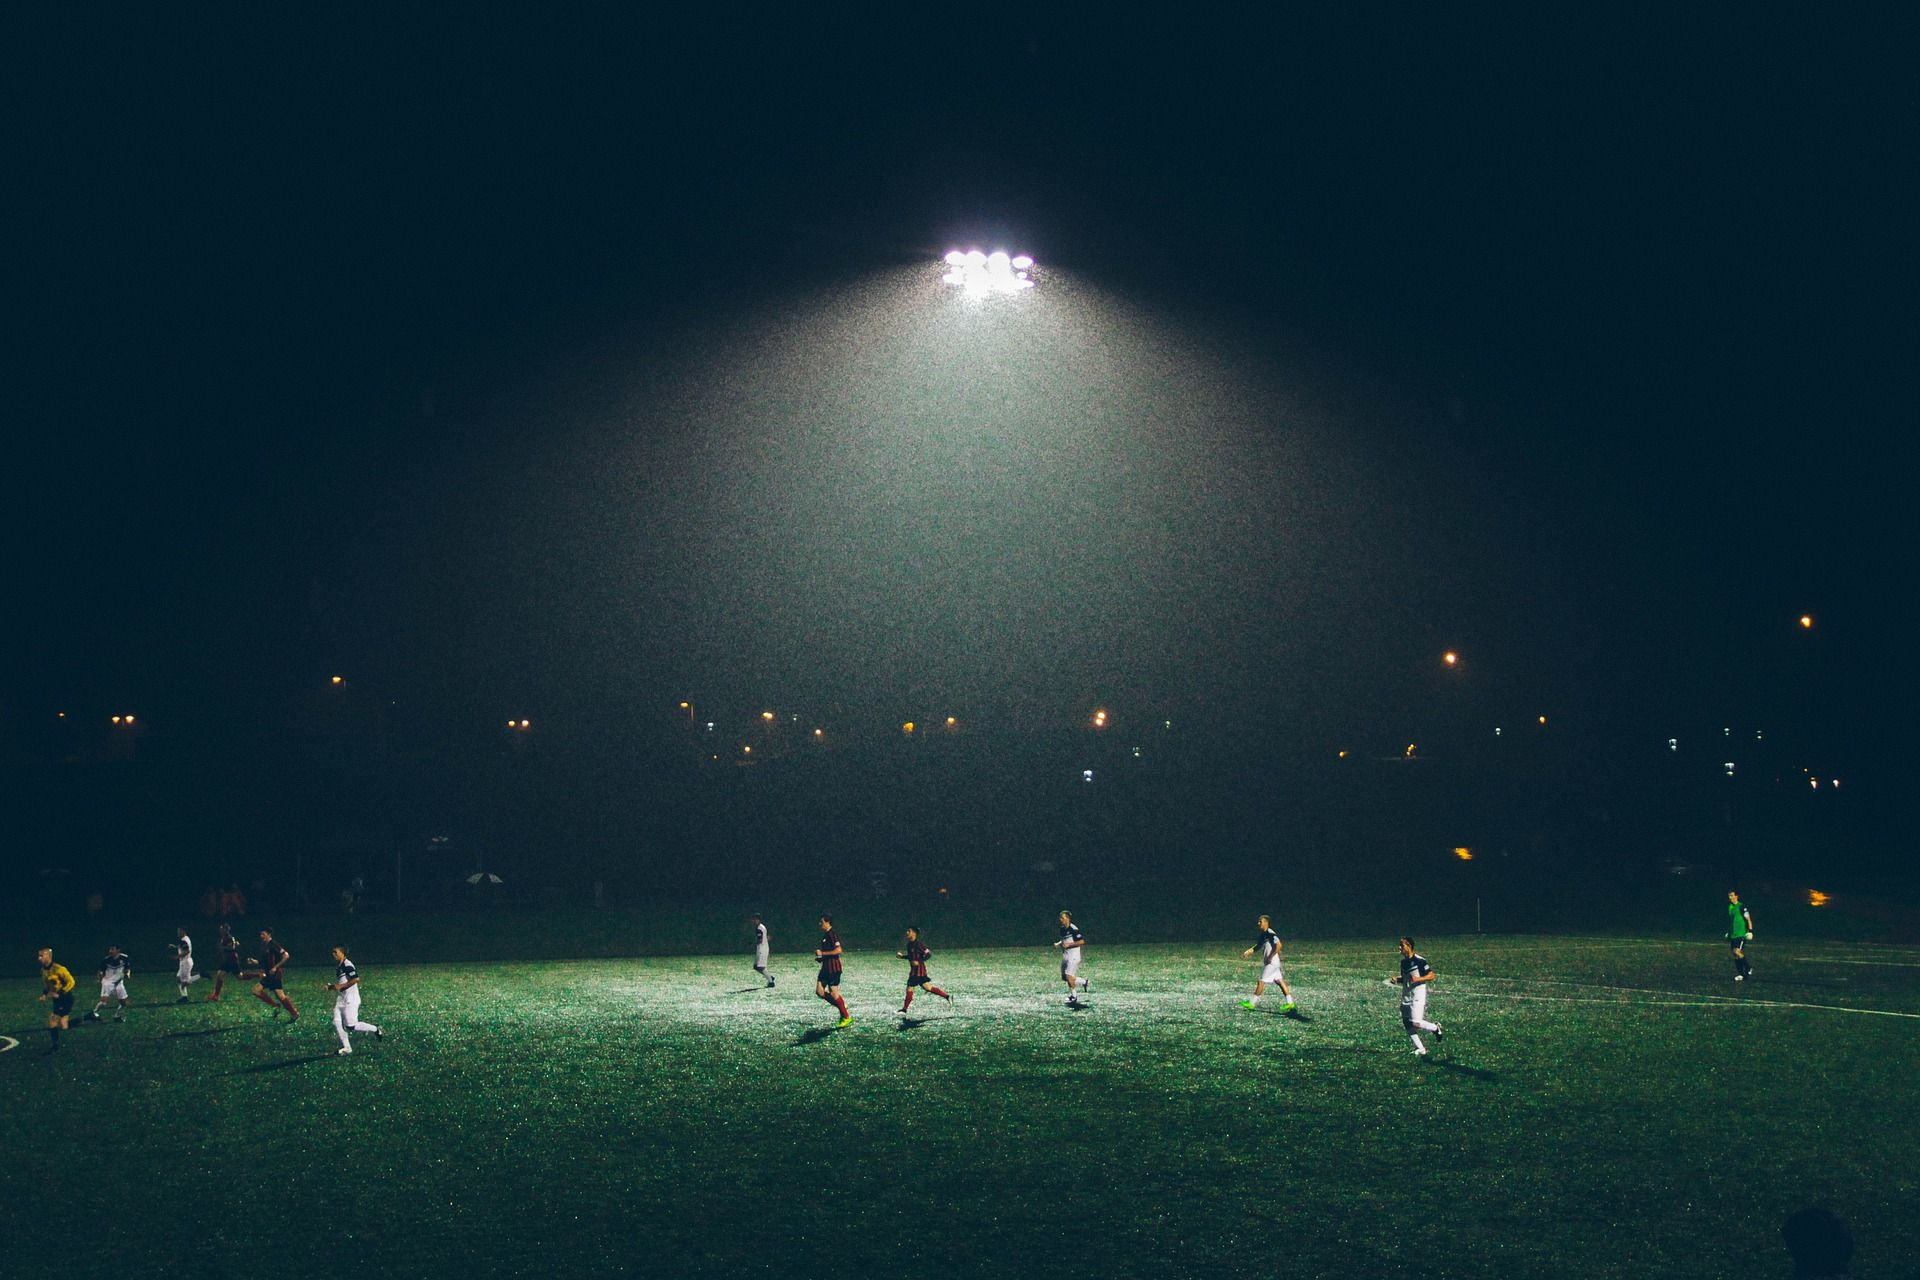 Soccer players on a field at night